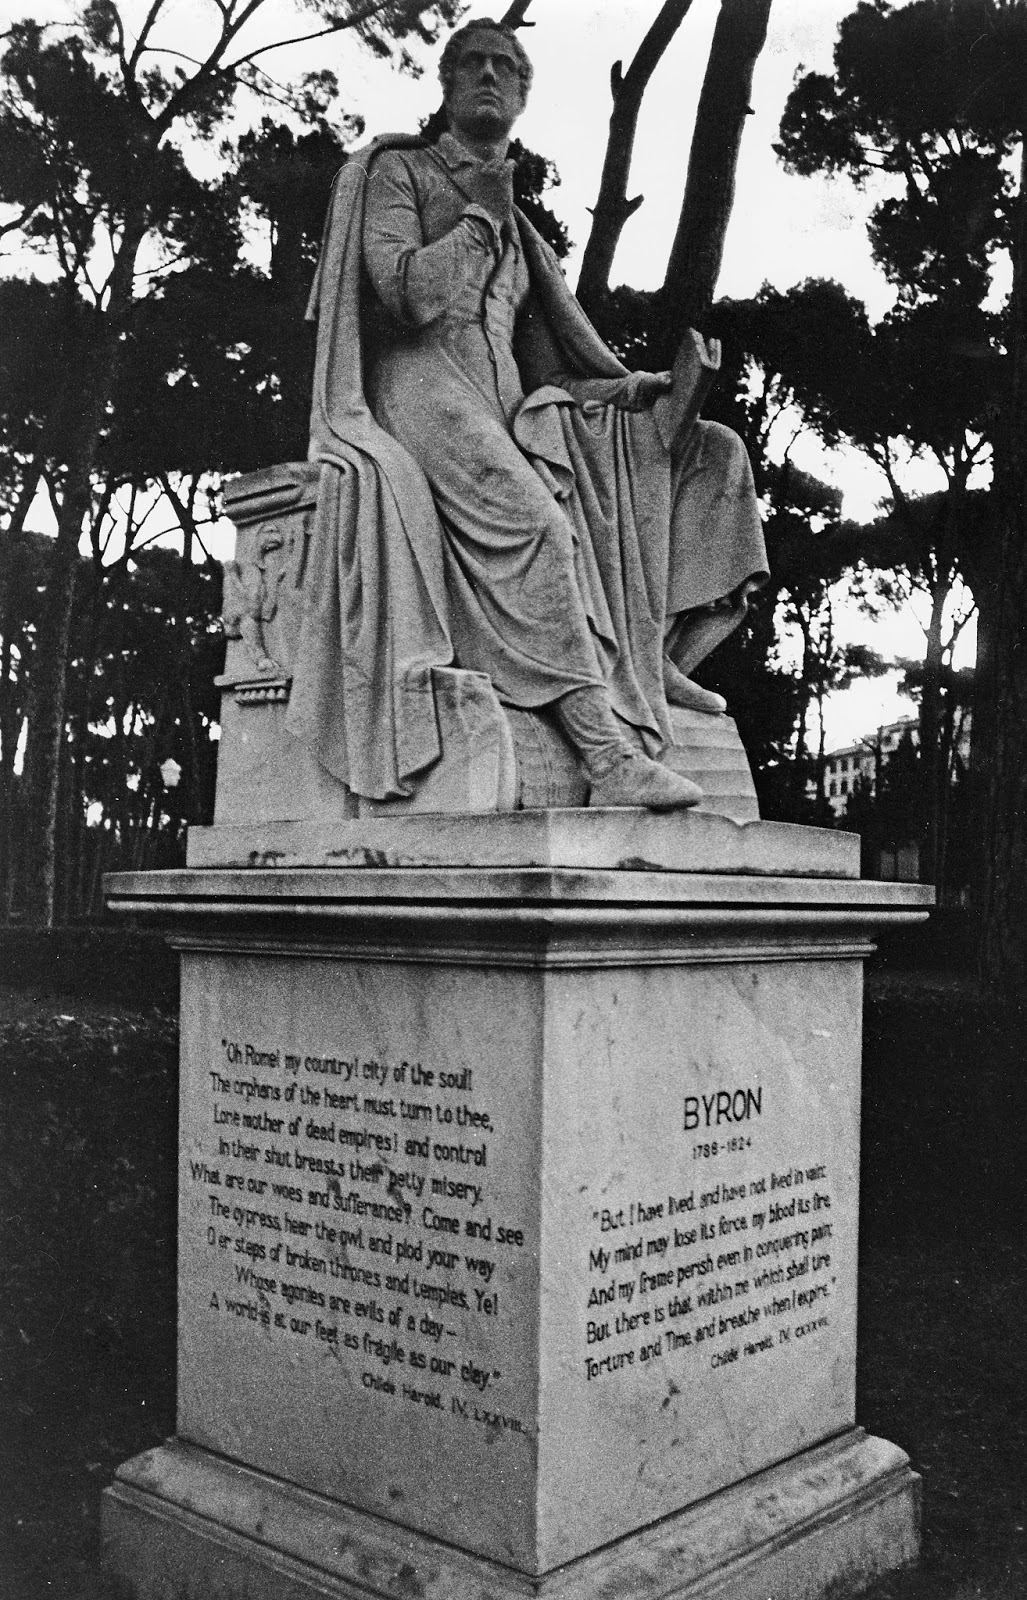 essay on lord byron Fagstoff: lord byron, or by his full name, george gordon byron, was indeed a  colourful figure in the cultural society  writing a literary essay.